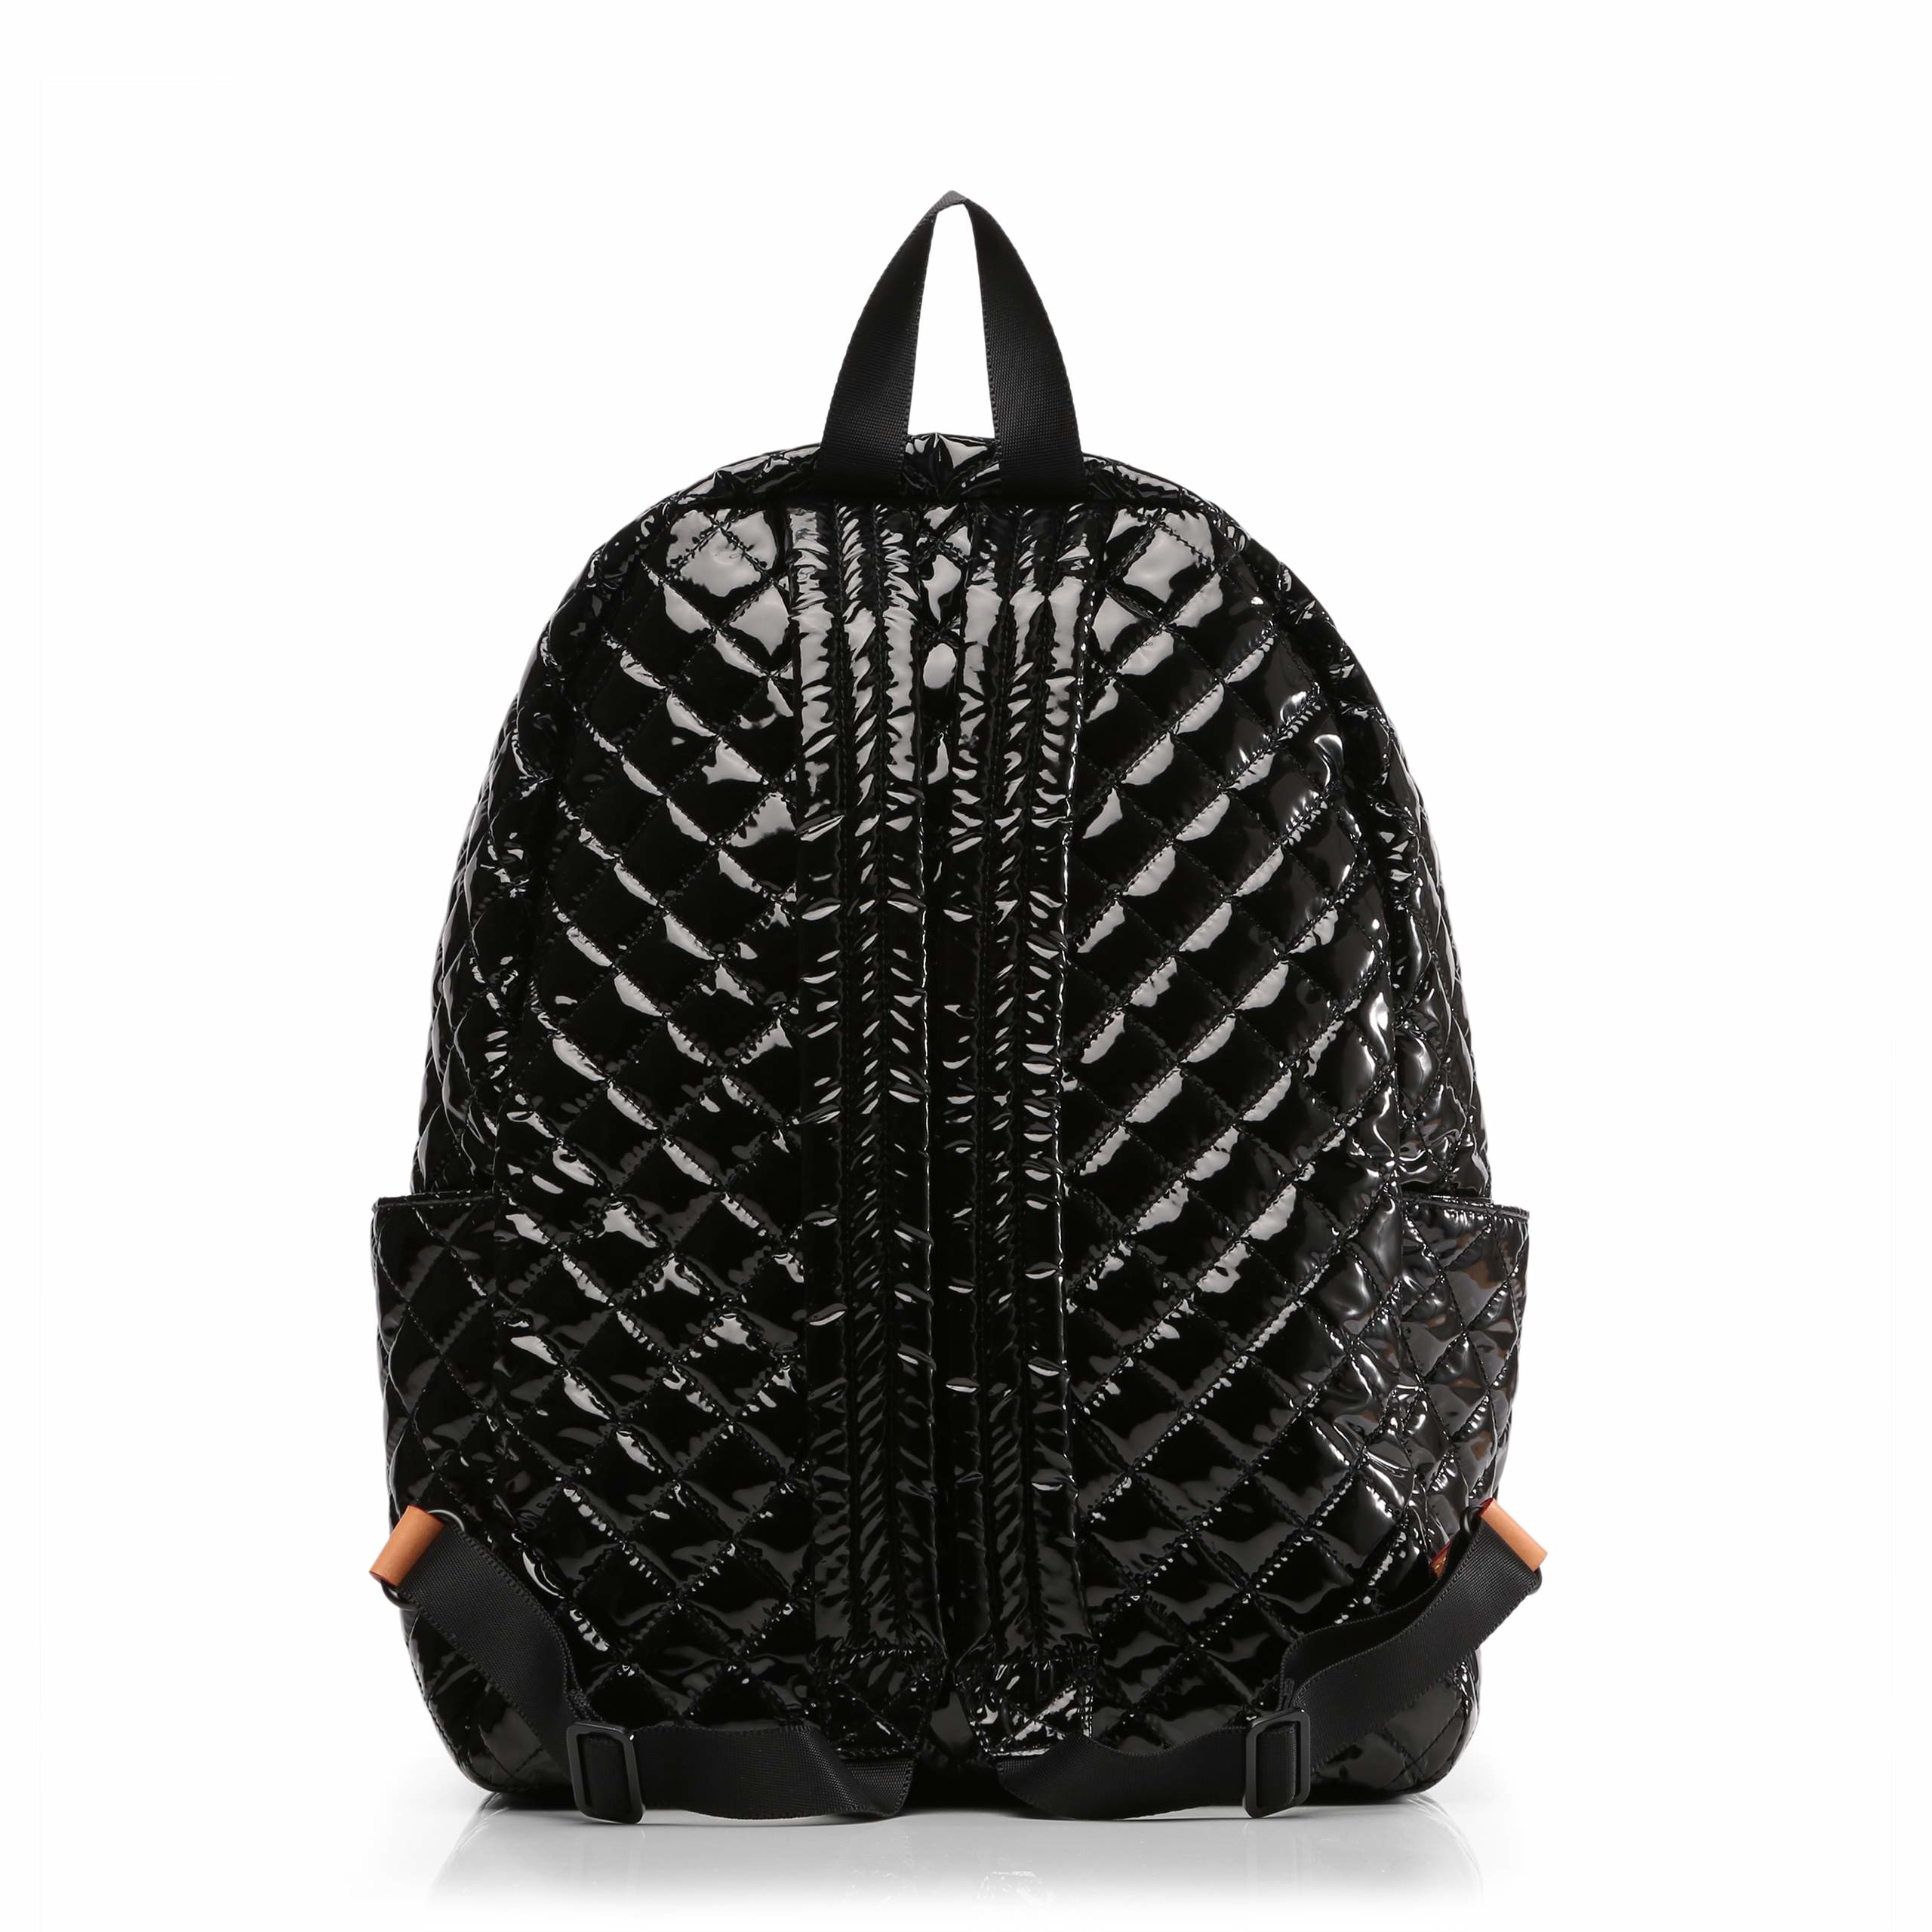 Mz Wallace Black Lacquer Metro Backpack In Black Lyst